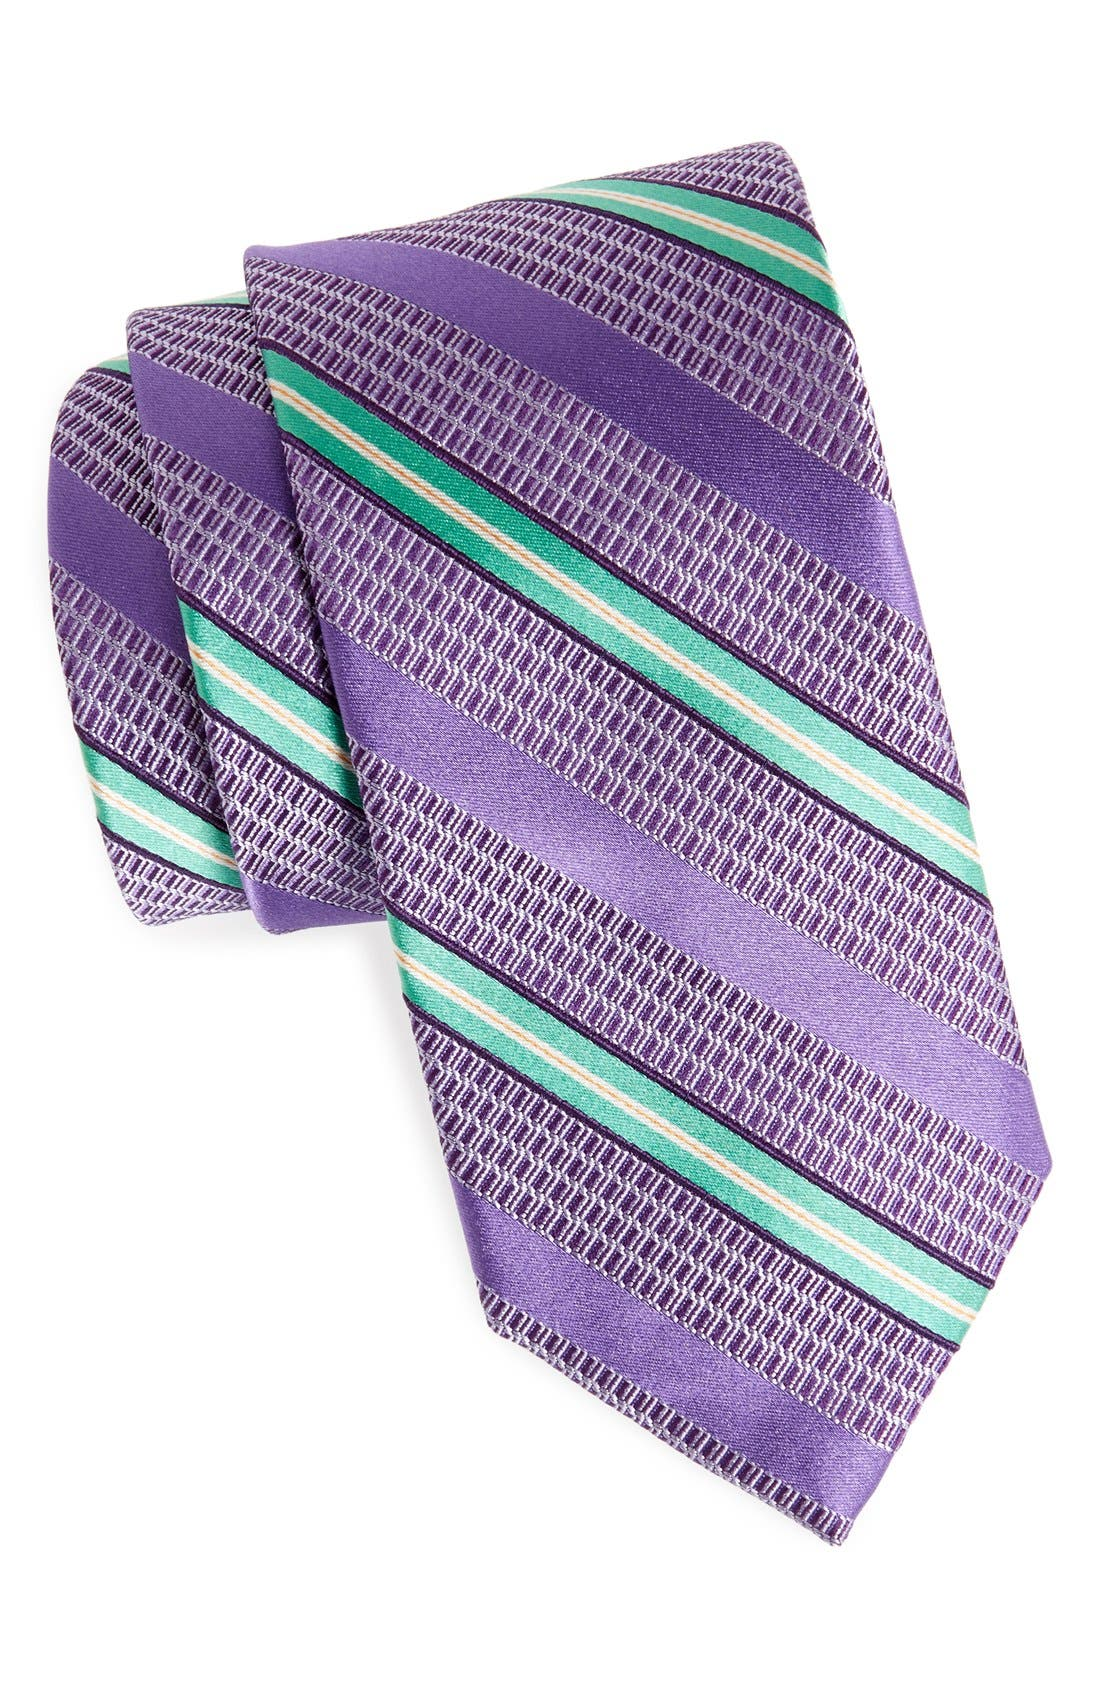 Woven Silk Tie,                             Main thumbnail 1, color,                             Purple